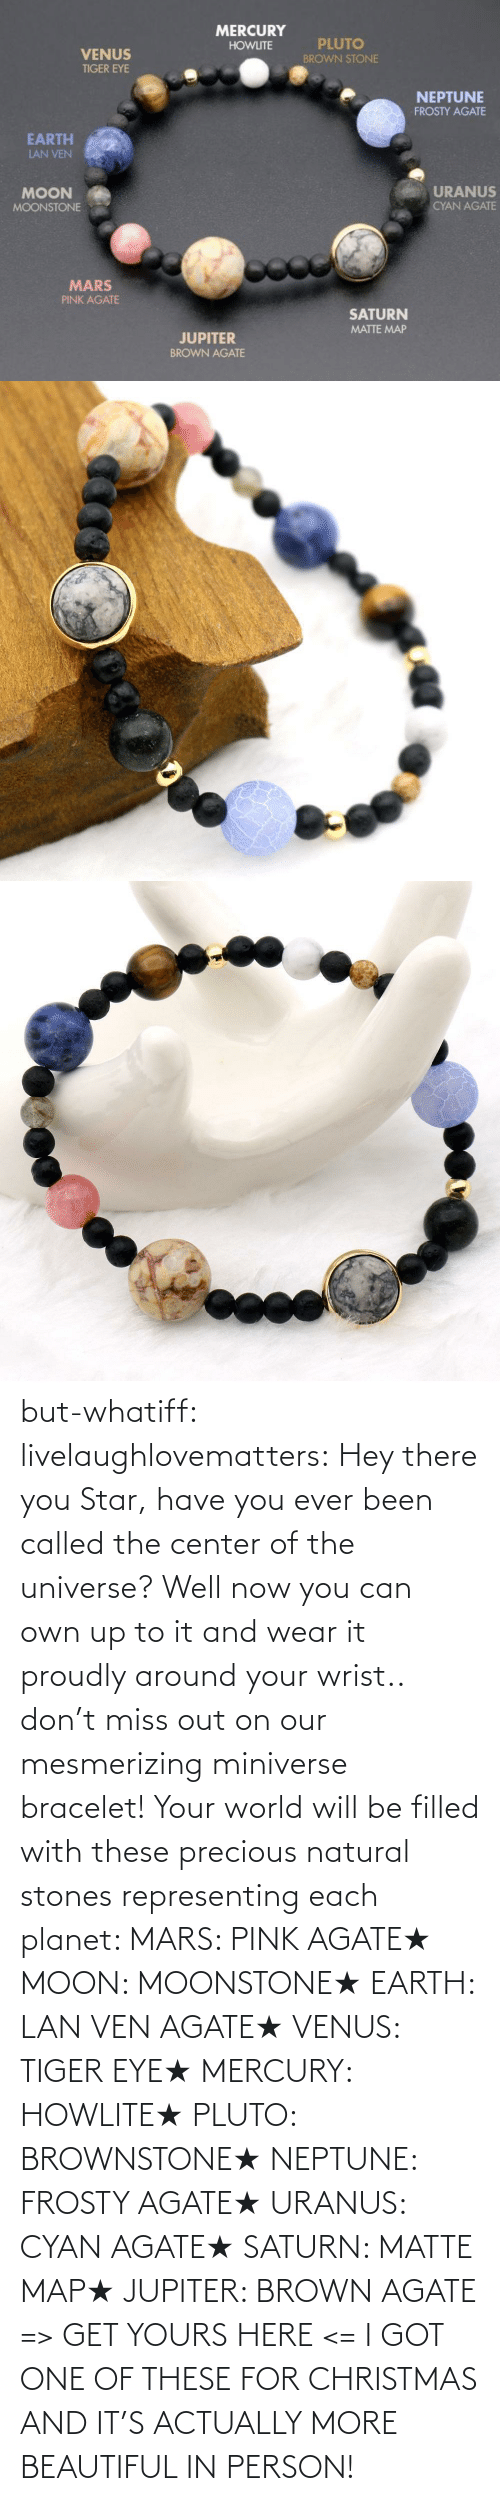 Got One: but-whatiff:  livelaughlovematters:  Hey there you Star, have you ever been called the center of the universe? Well now you can own up to it and wear it proudly around your wrist.. don't miss out on our mesmerizing miniverse bracelet! Your world will be filled with these precious natural stones representing each planet:  MARS: PINK AGATE★ MOON: MOONSTONE★ EARTH: LAN VEN AGATE★ VENUS: TIGER EYE★ MERCURY: HOWLITE★ PLUTO: BROWNSTONE★ NEPTUNE: FROSTY AGATE★ URANUS: CYAN AGATE★ SATURN: MATTE MAP★ JUPITER: BROWN AGATE => GET YOURS HERE <=  I GOT ONE OF THESE FOR CHRISTMAS AND IT'S ACTUALLY MORE BEAUTIFUL IN PERSON!